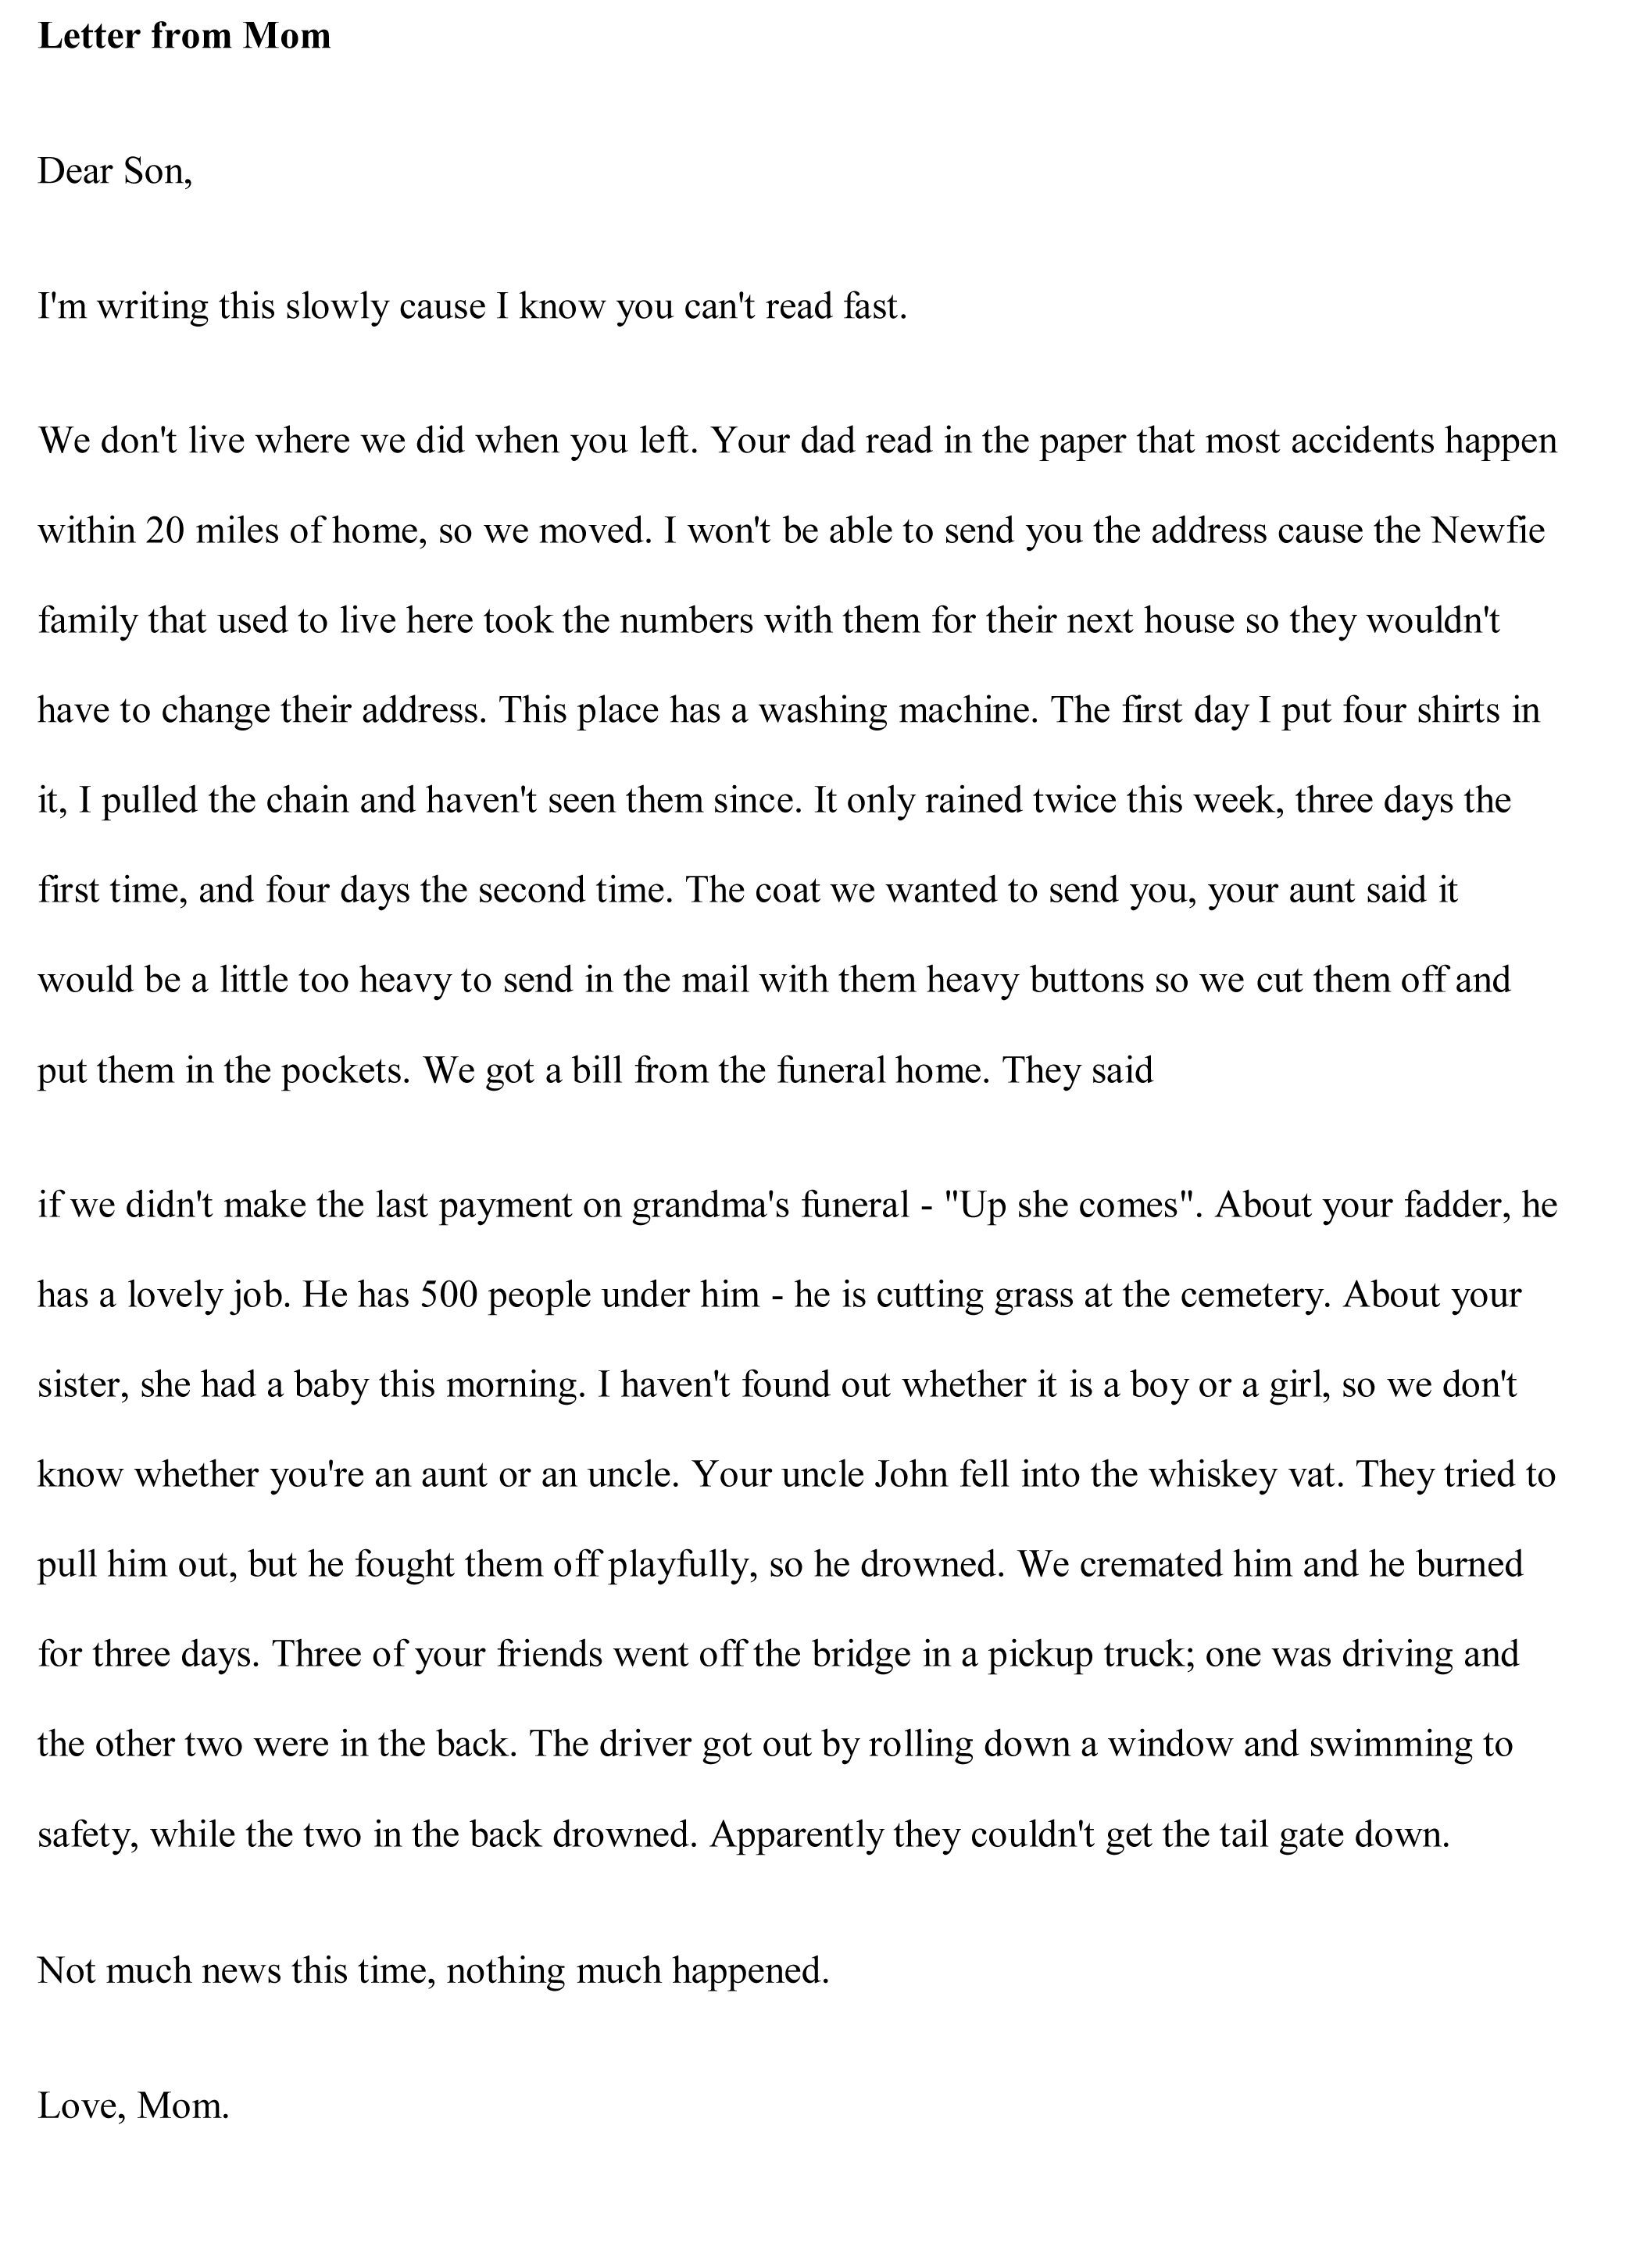 003 Essay Example Funny Essays Free Stupendous Topics For High School Students About Full